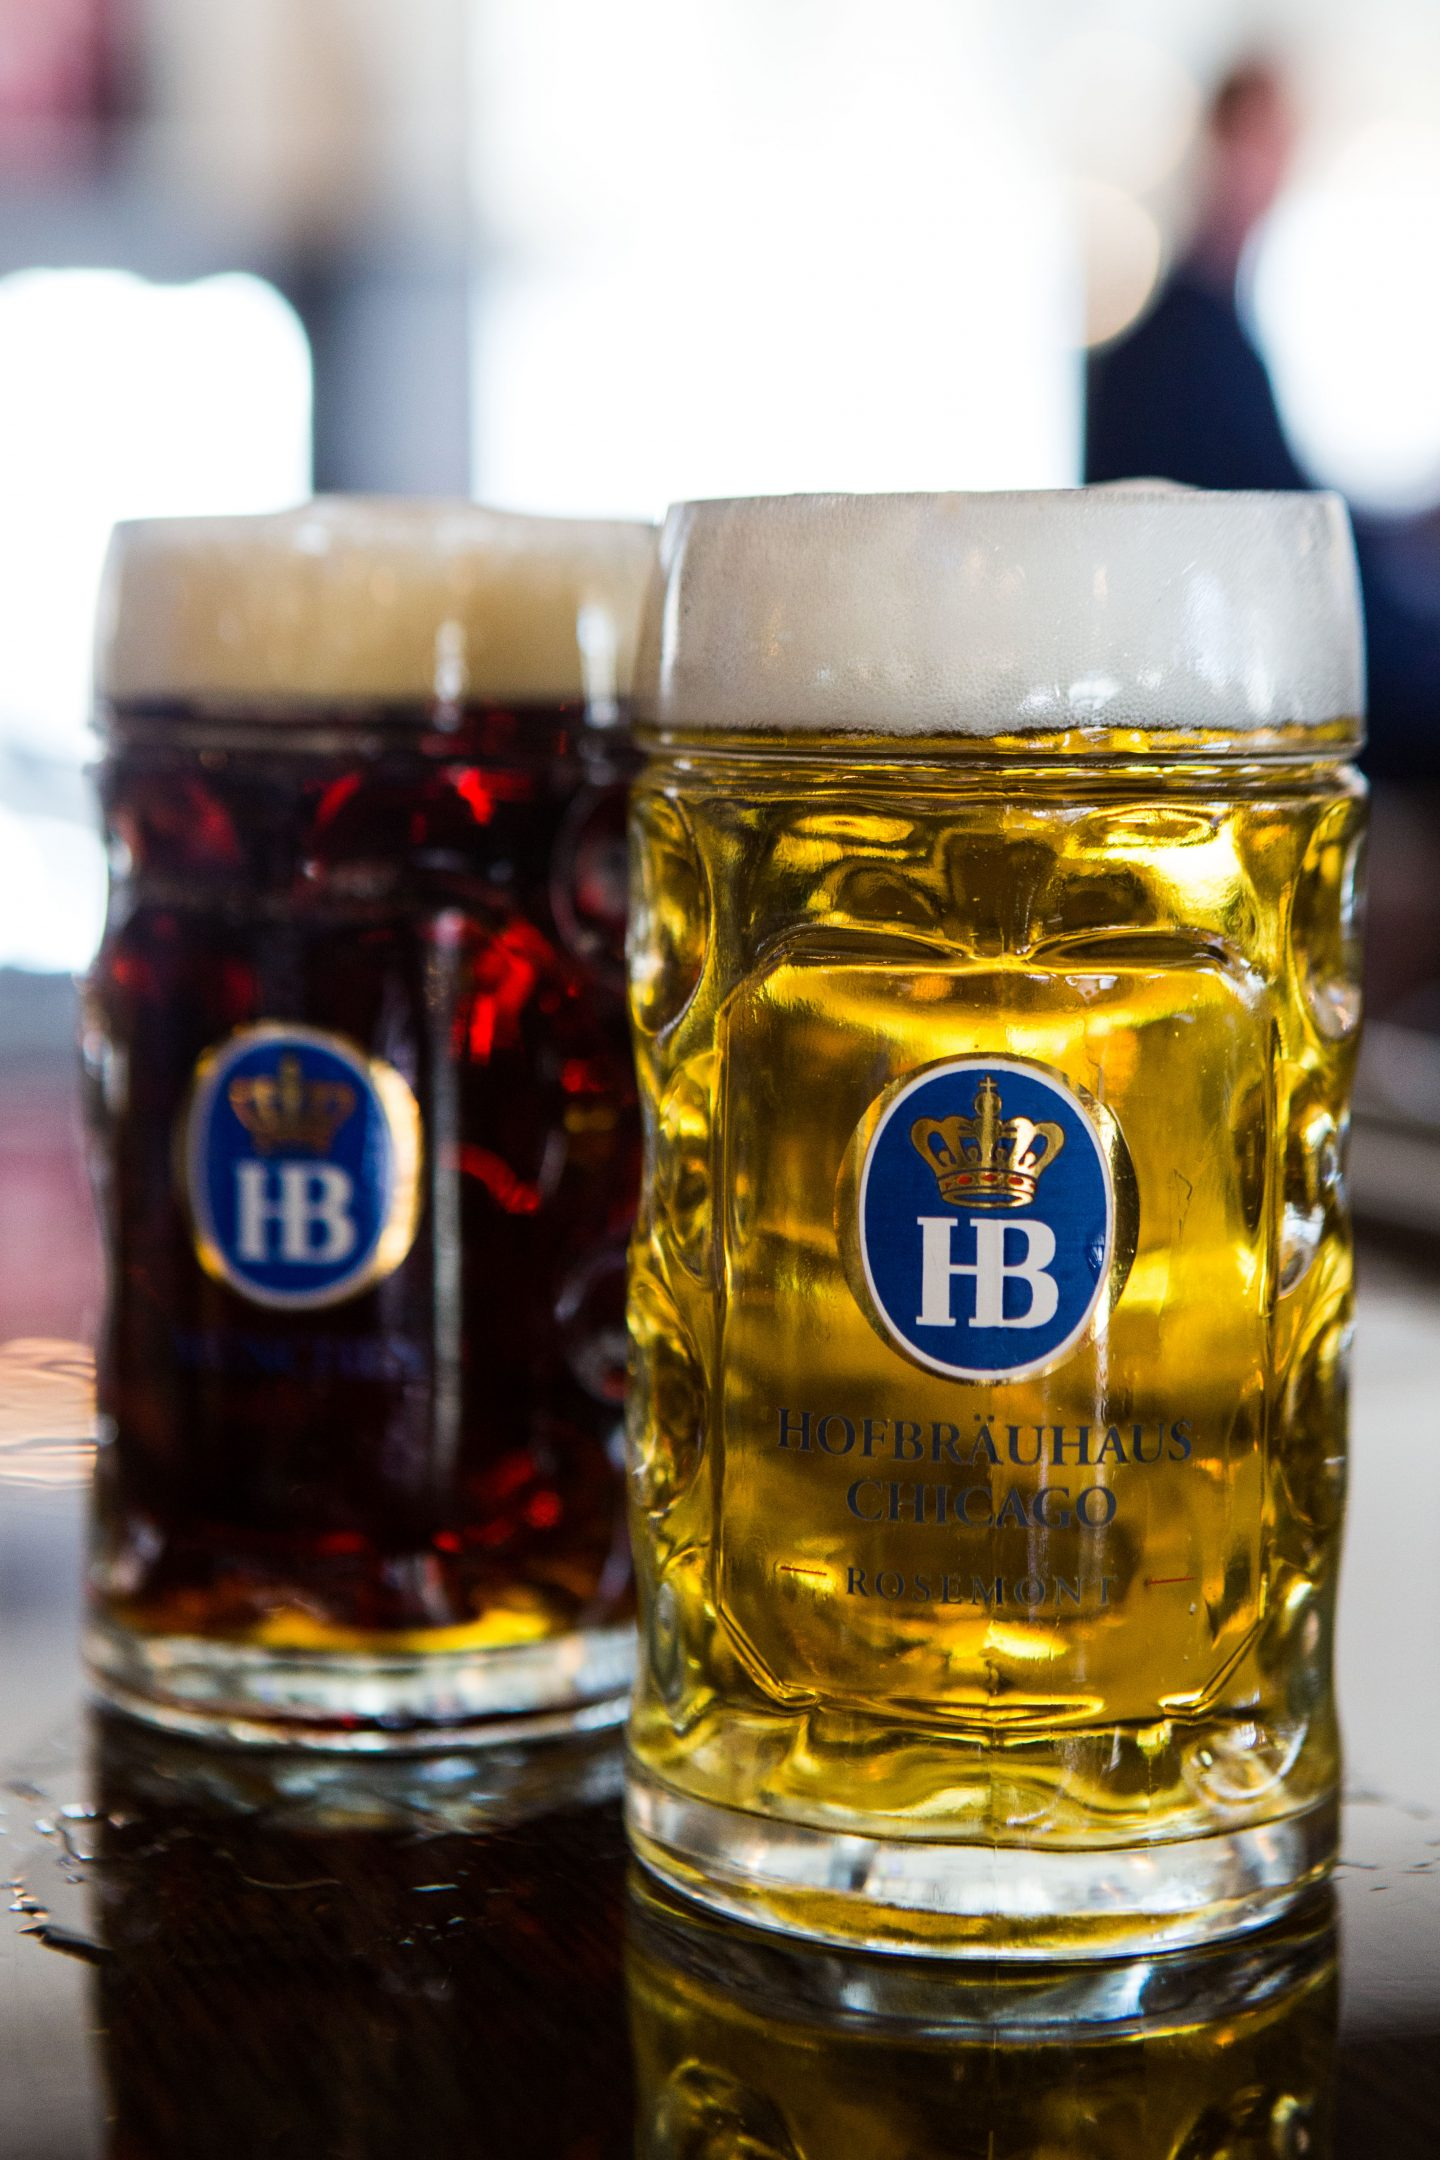 Hofbrauhaus beer selection